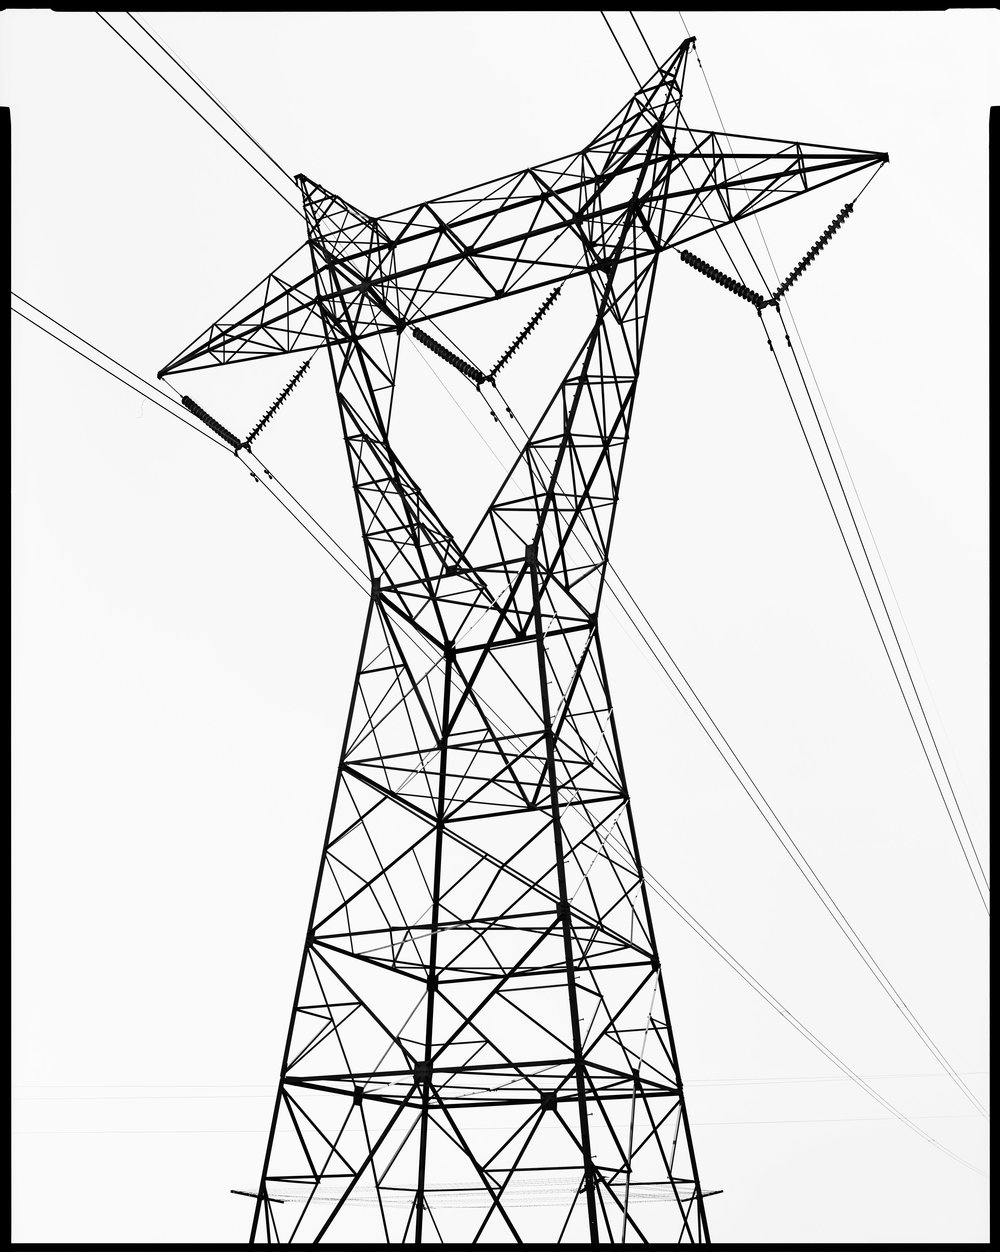 011___Untitled (Electrical Tower).jpg